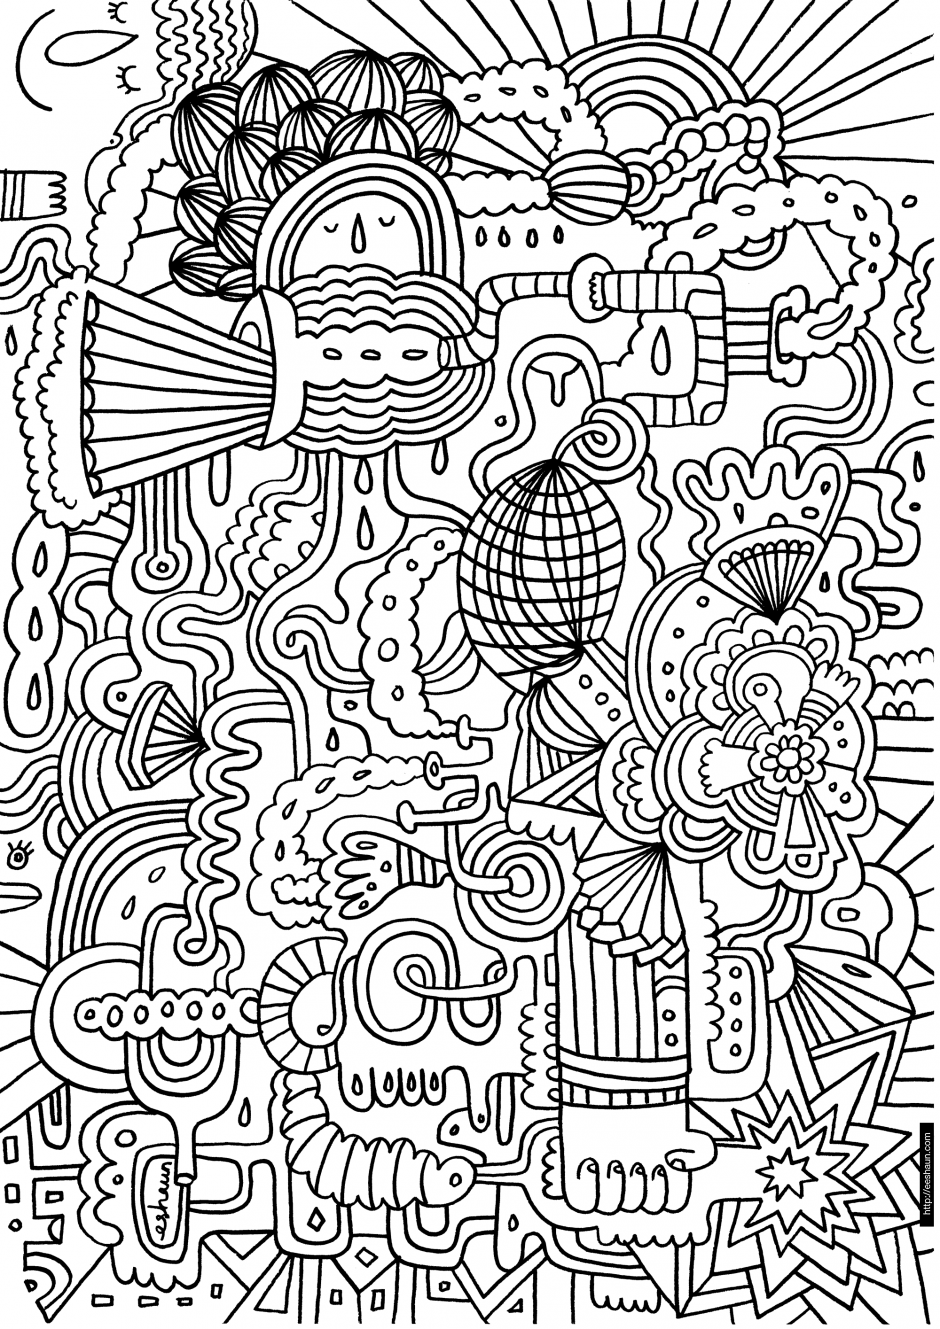 hard drawings to color teenage coloring pages free printable coloring home to drawings hard color